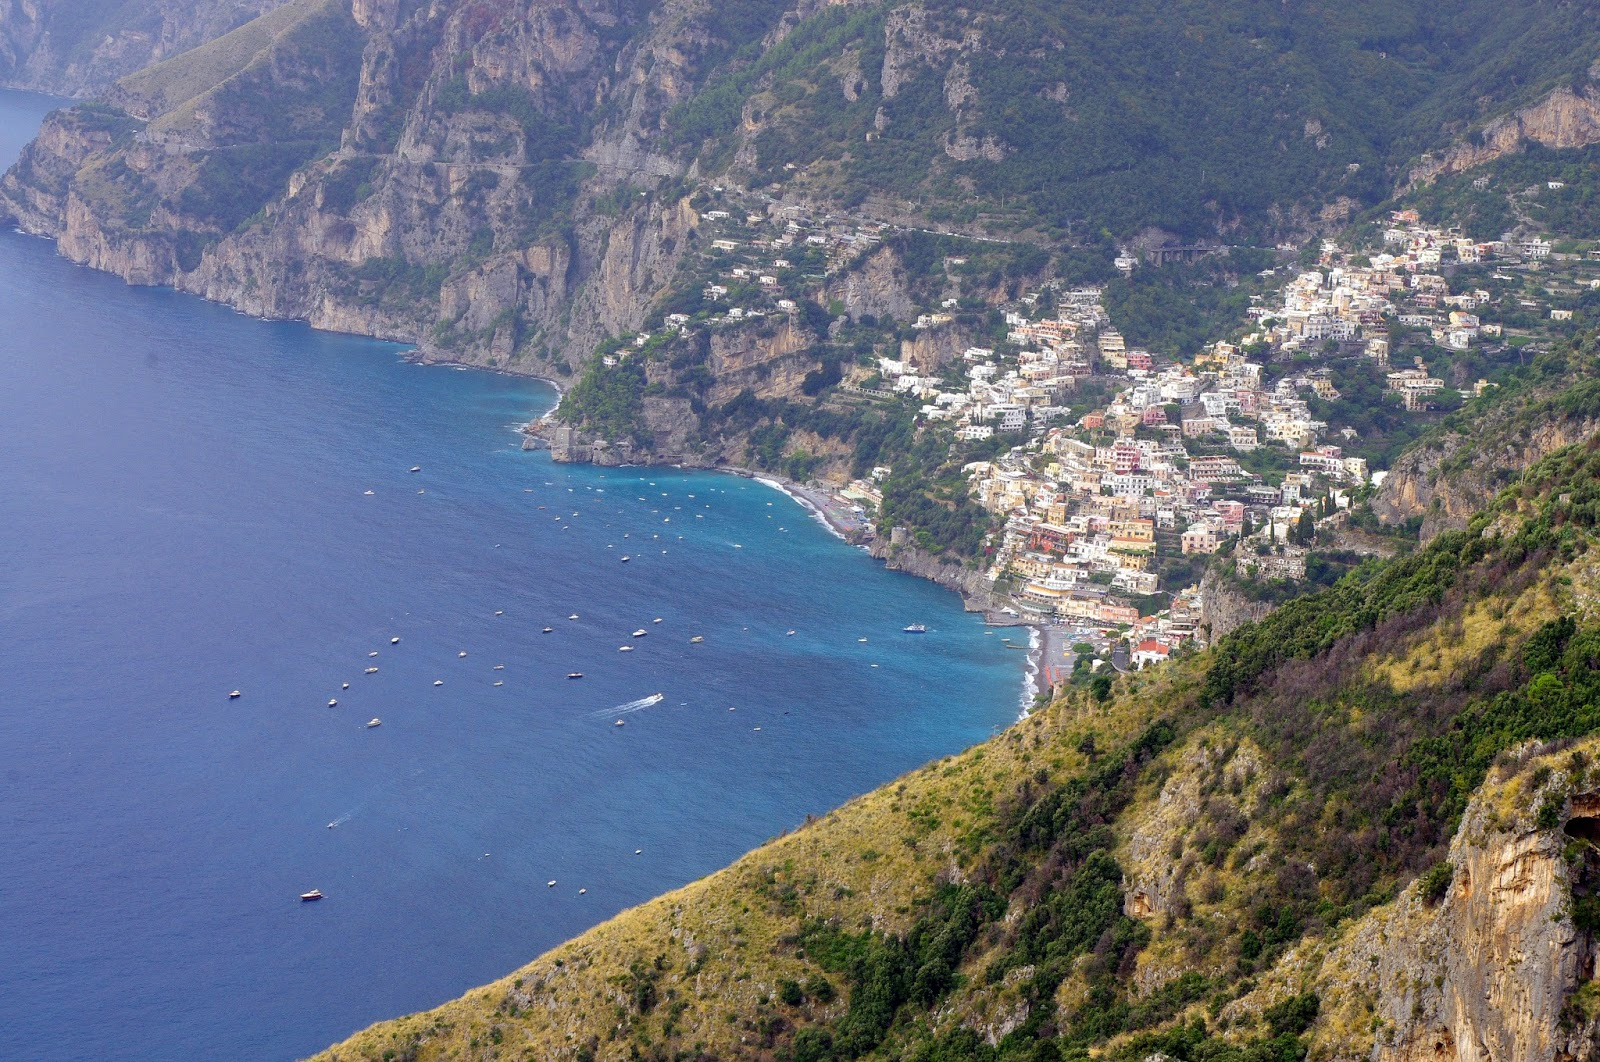 View of Positano from Walk of the Gods